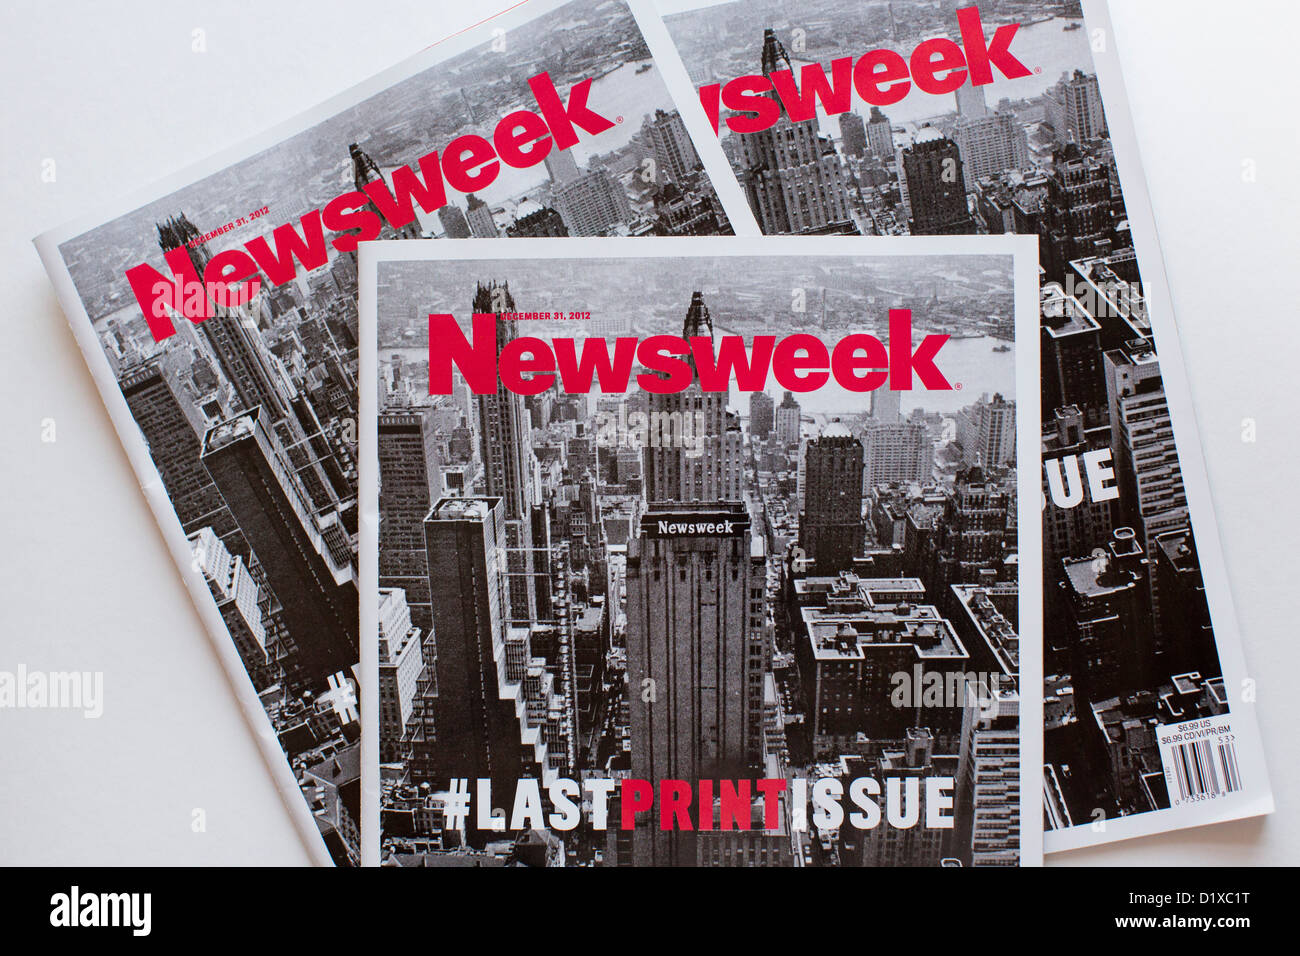 The final print edition of Newsweek magazine.  - Stock Image